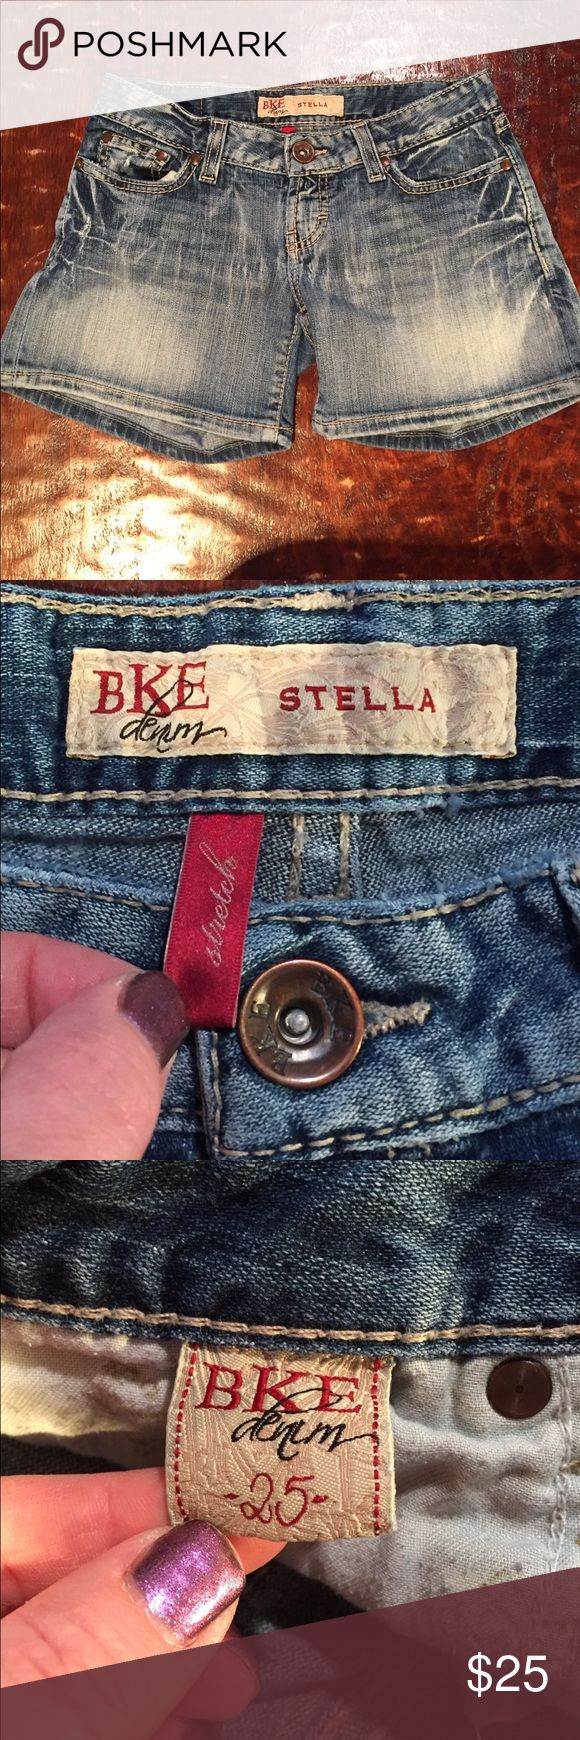 """BKE Stella Stretch Shorts Size 25 BKE Stella Stretch Shorts Size 25. Shorts have a 4"""" inseam. Shorts are in excellent condition with no signs of wear. Comes from a Smoke Free/Pet Friendly home. Offers always welcome. BKE Shorts Jean Shorts"""